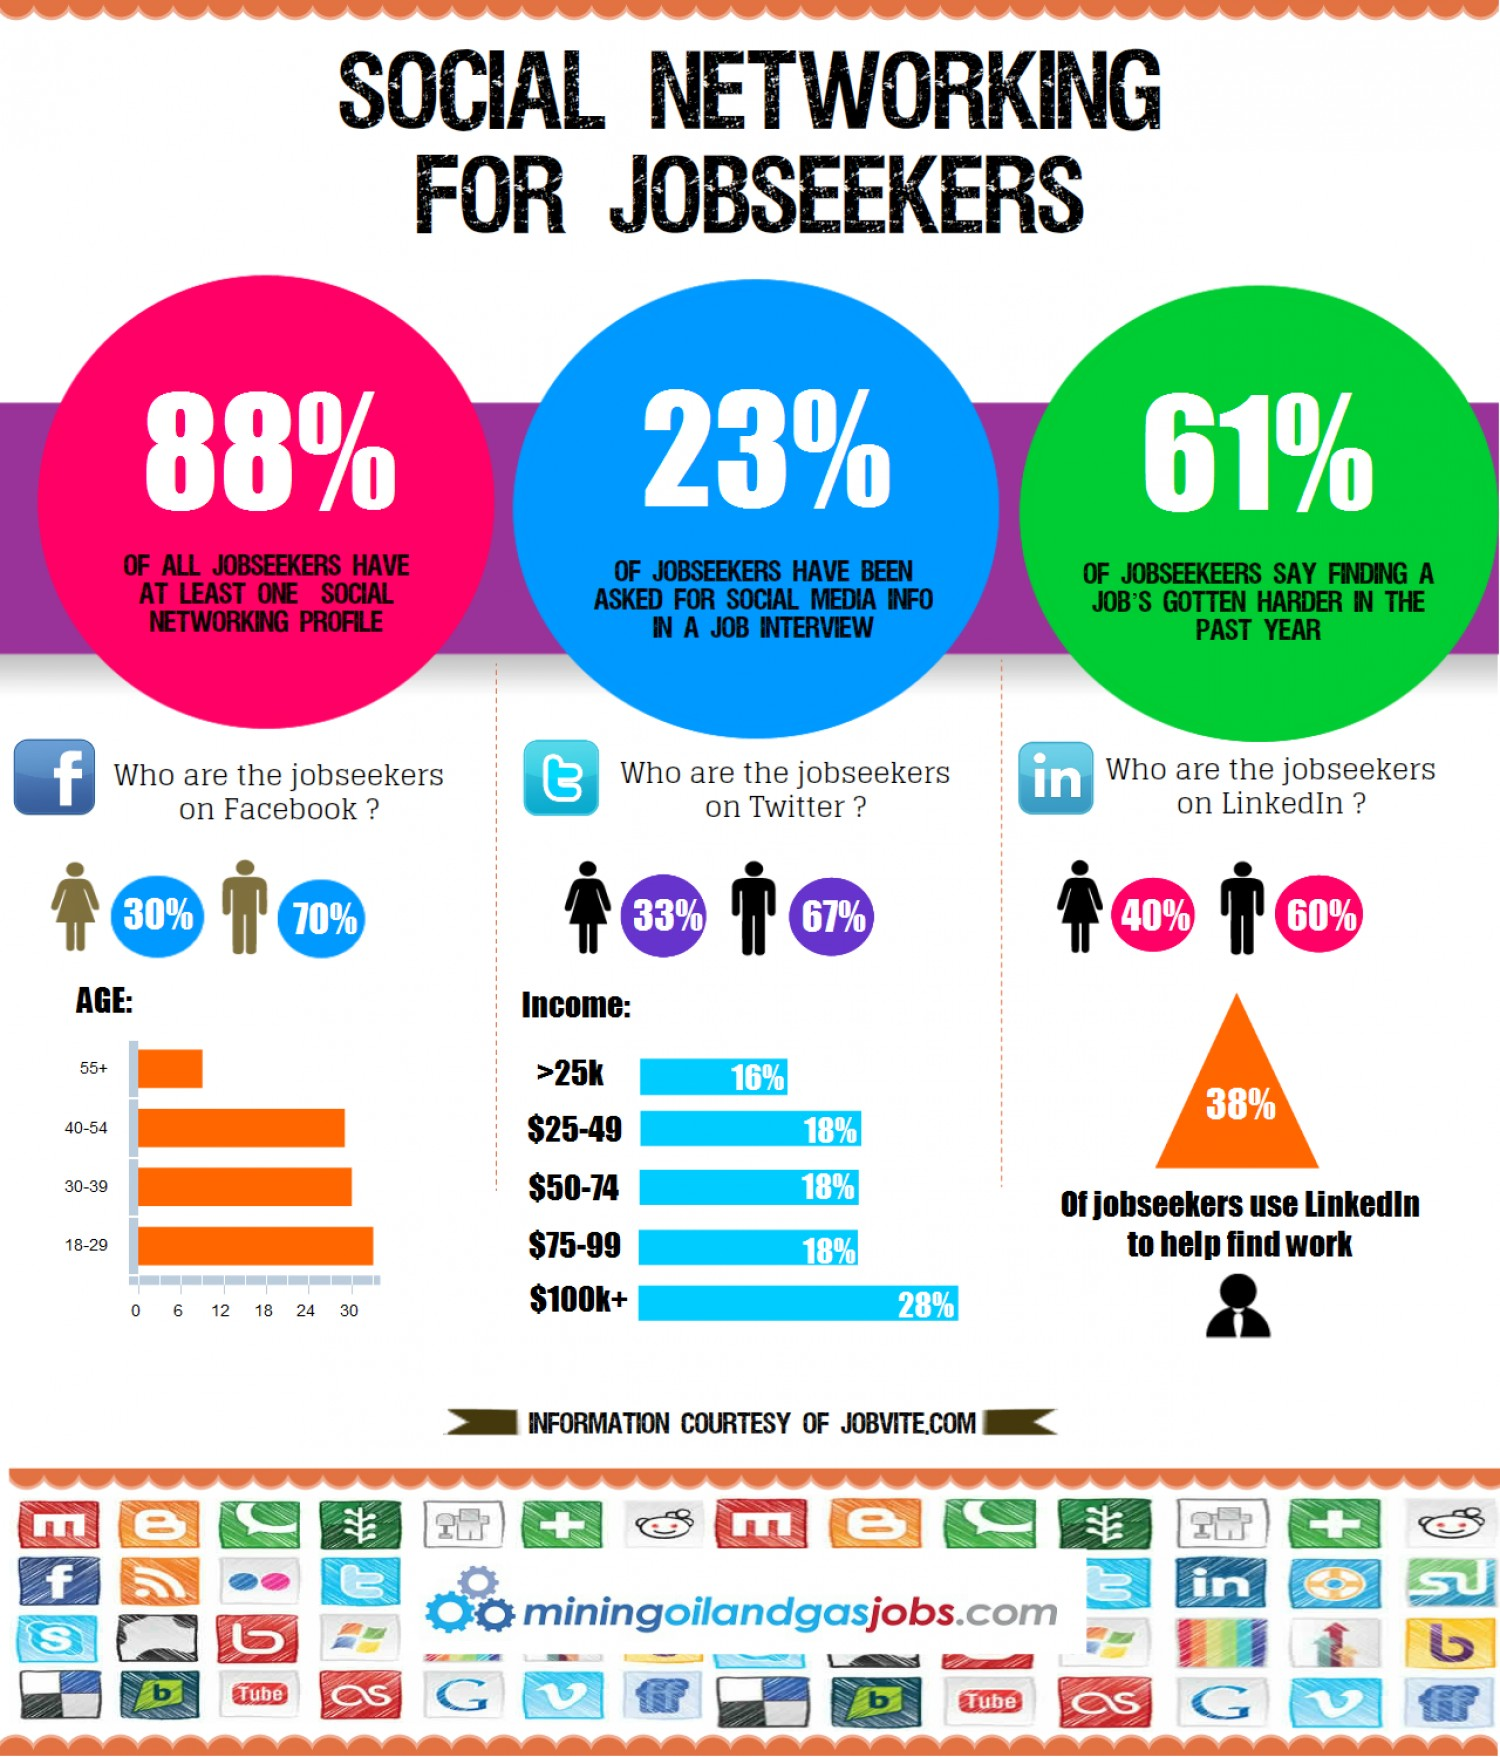 10. Social Networking for Jobseekers